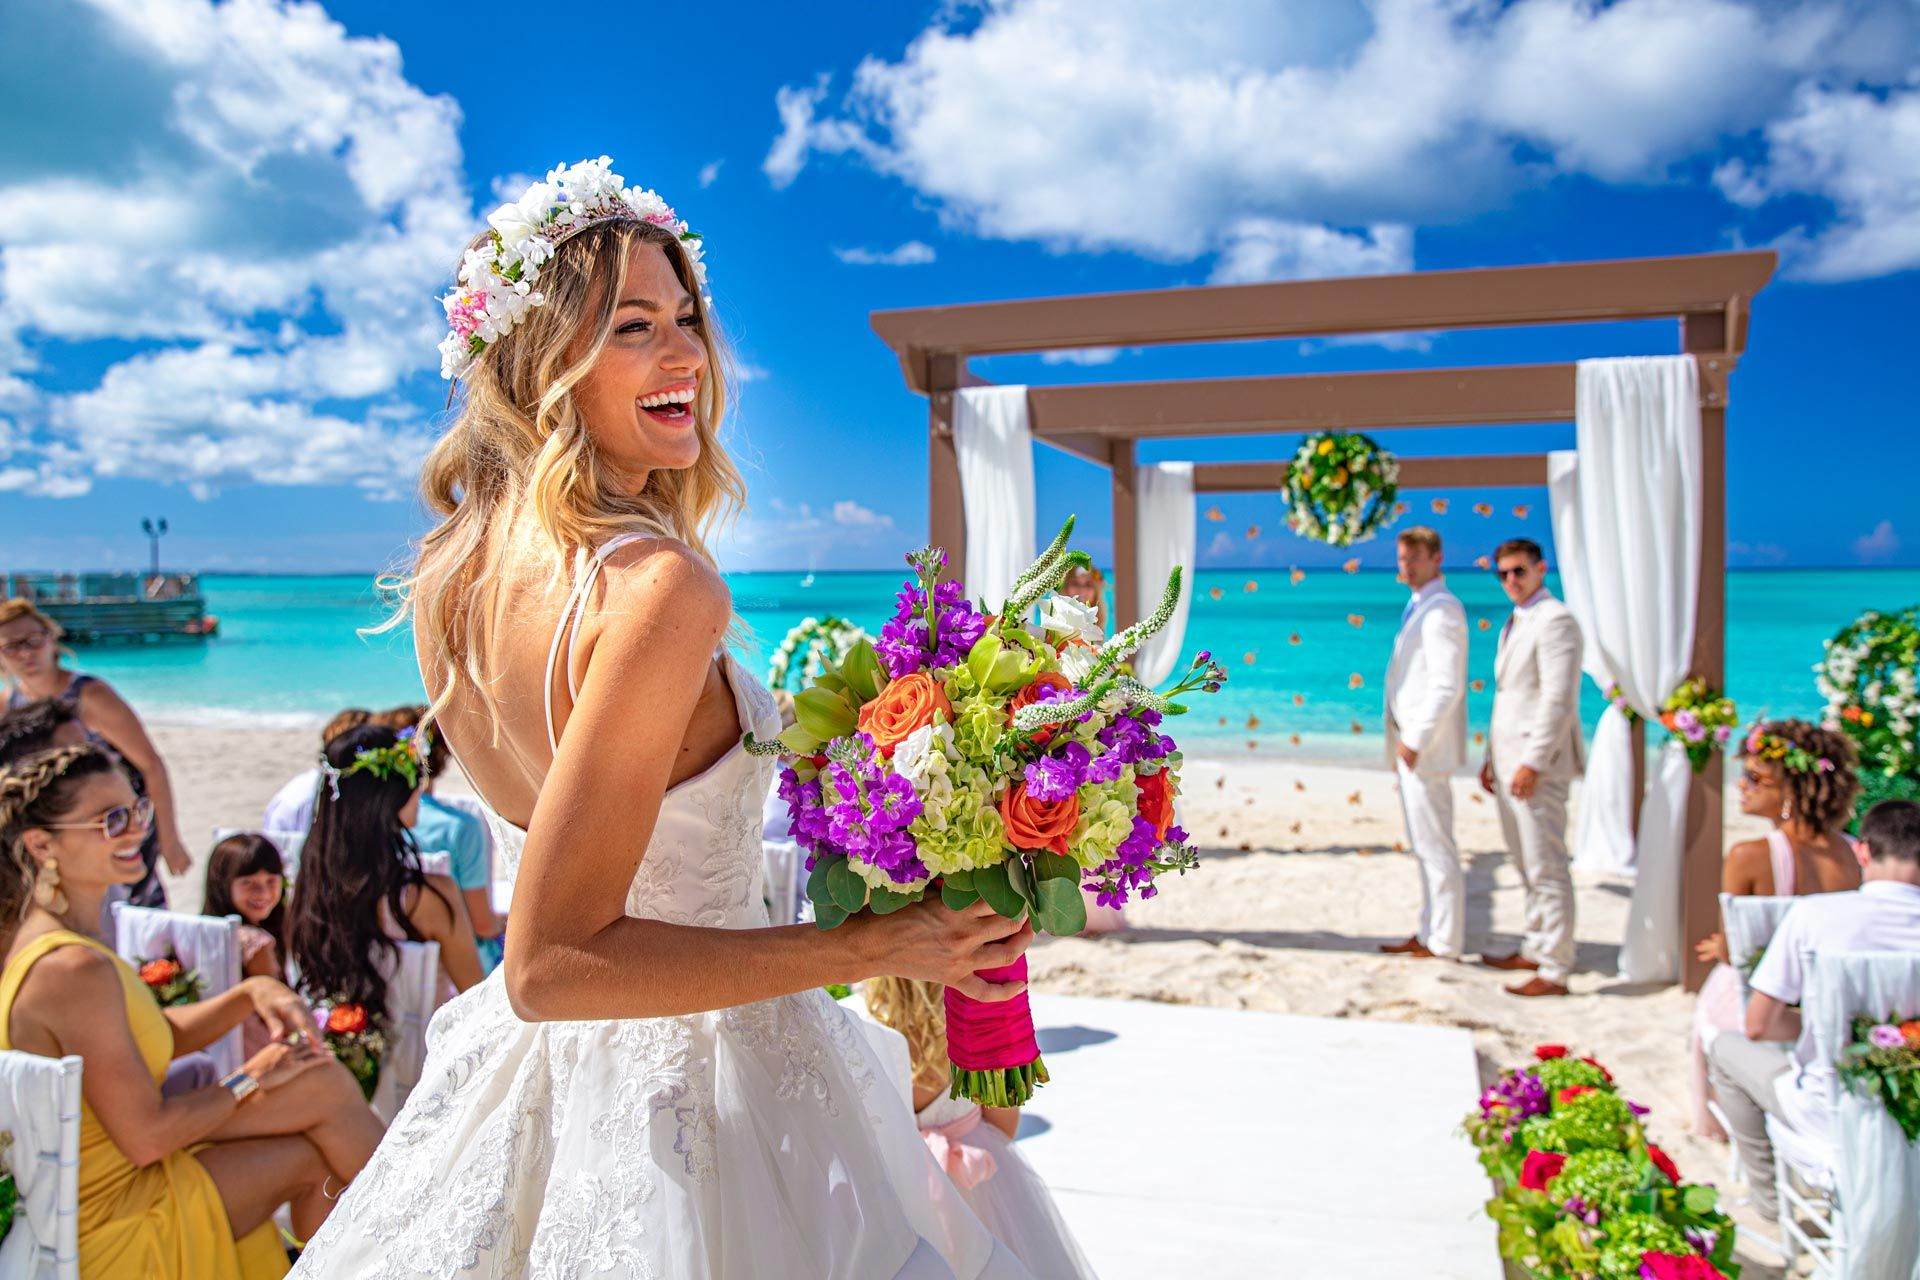 Destination Wedding Etiquette: The Do's & Don'ts